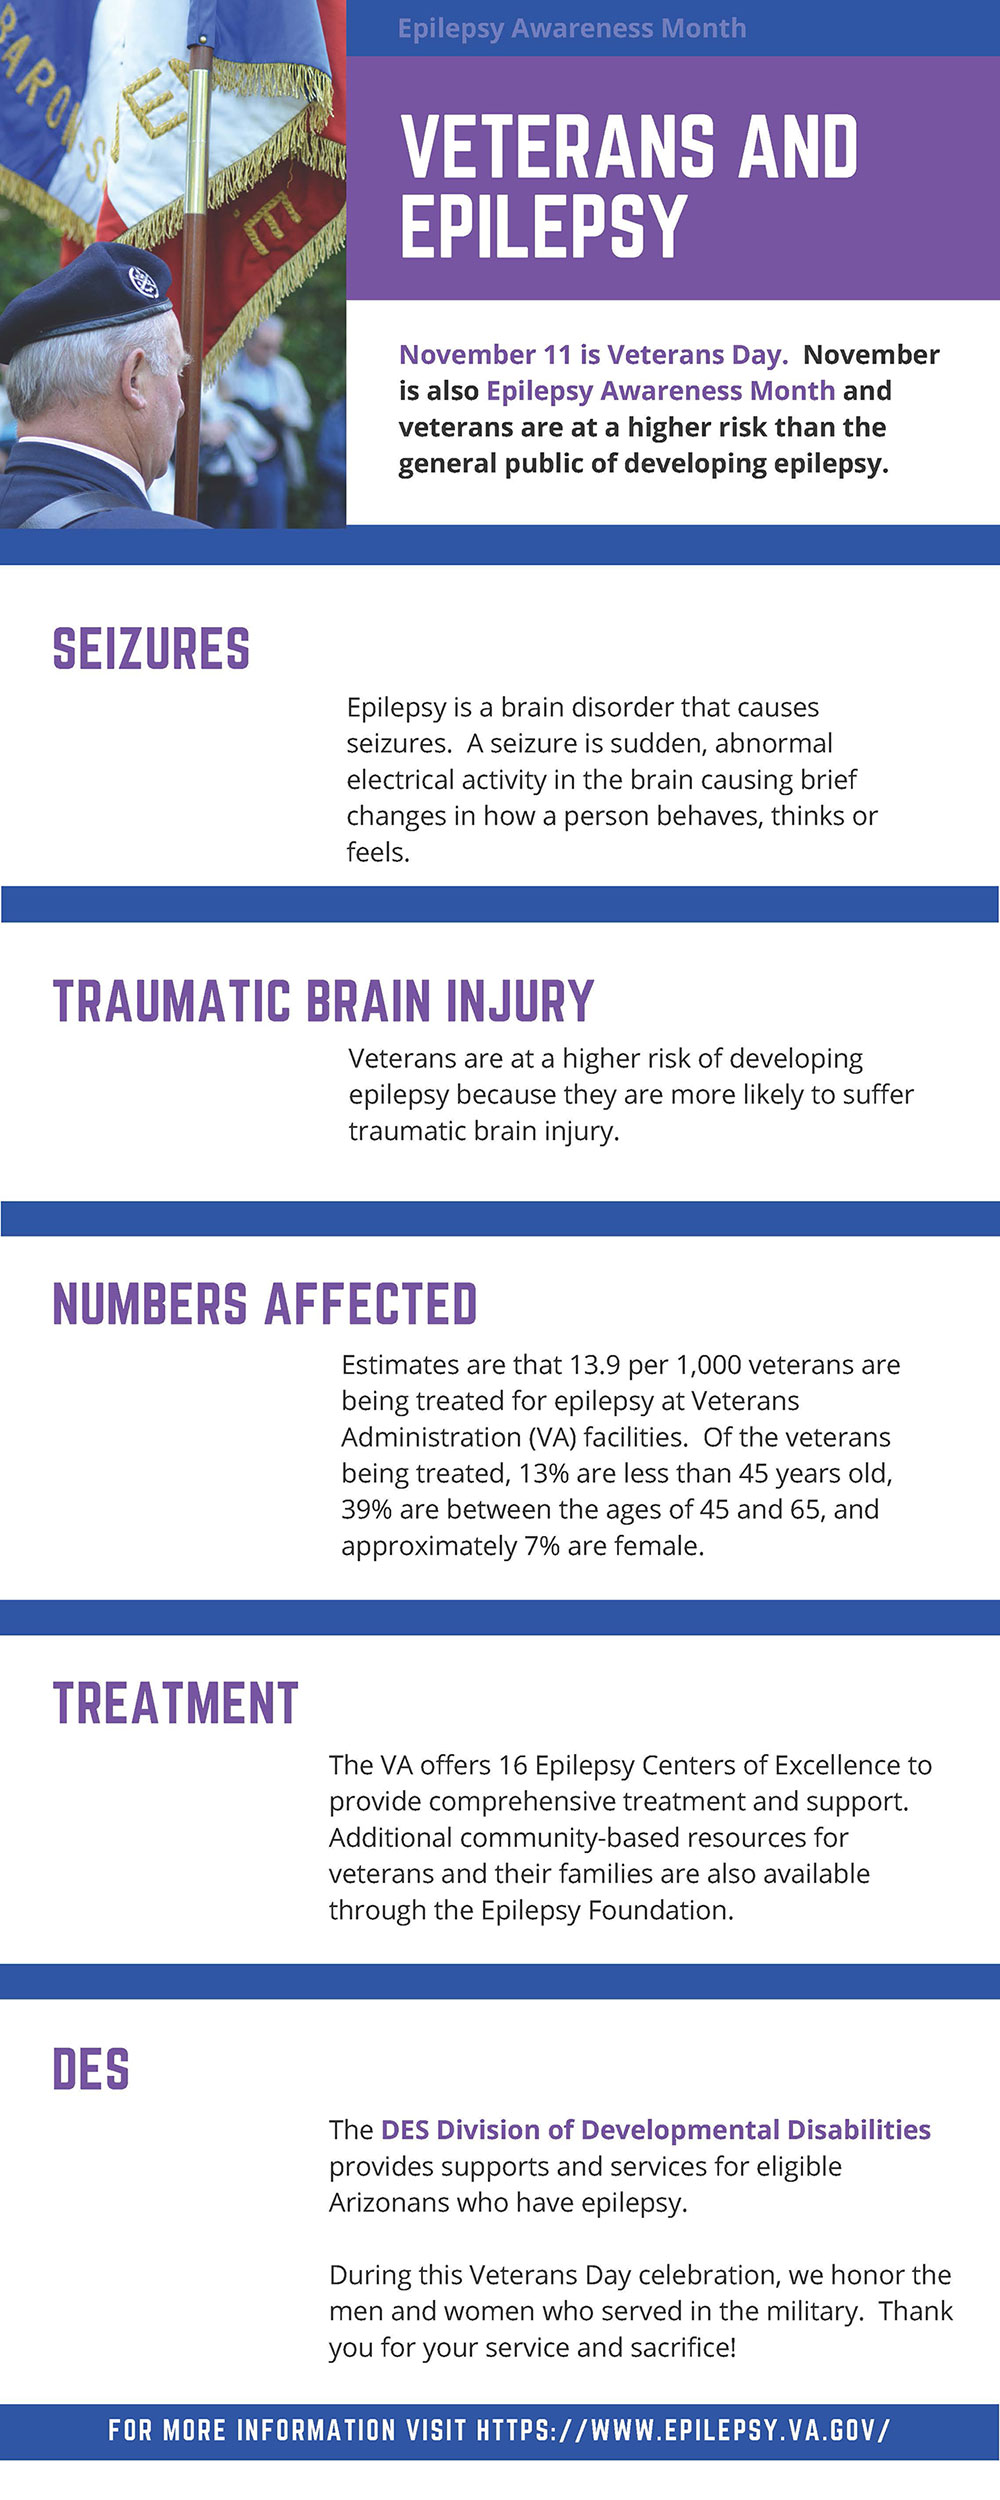 Facts about veterans and epilepsy